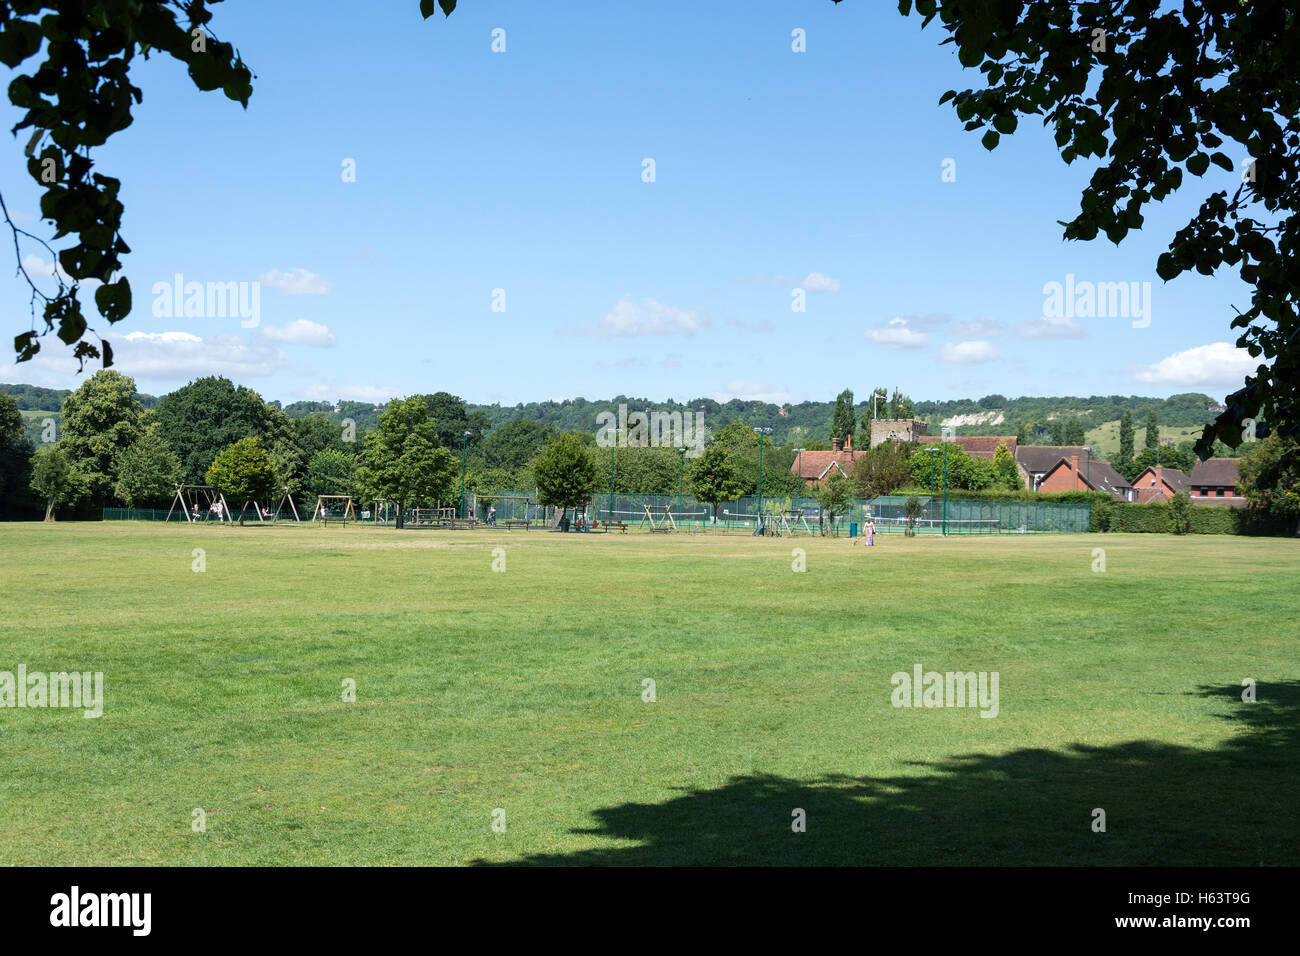 Master Park, Church Lane, Oxted, Surrey, England, United Kingdom - Stock Image